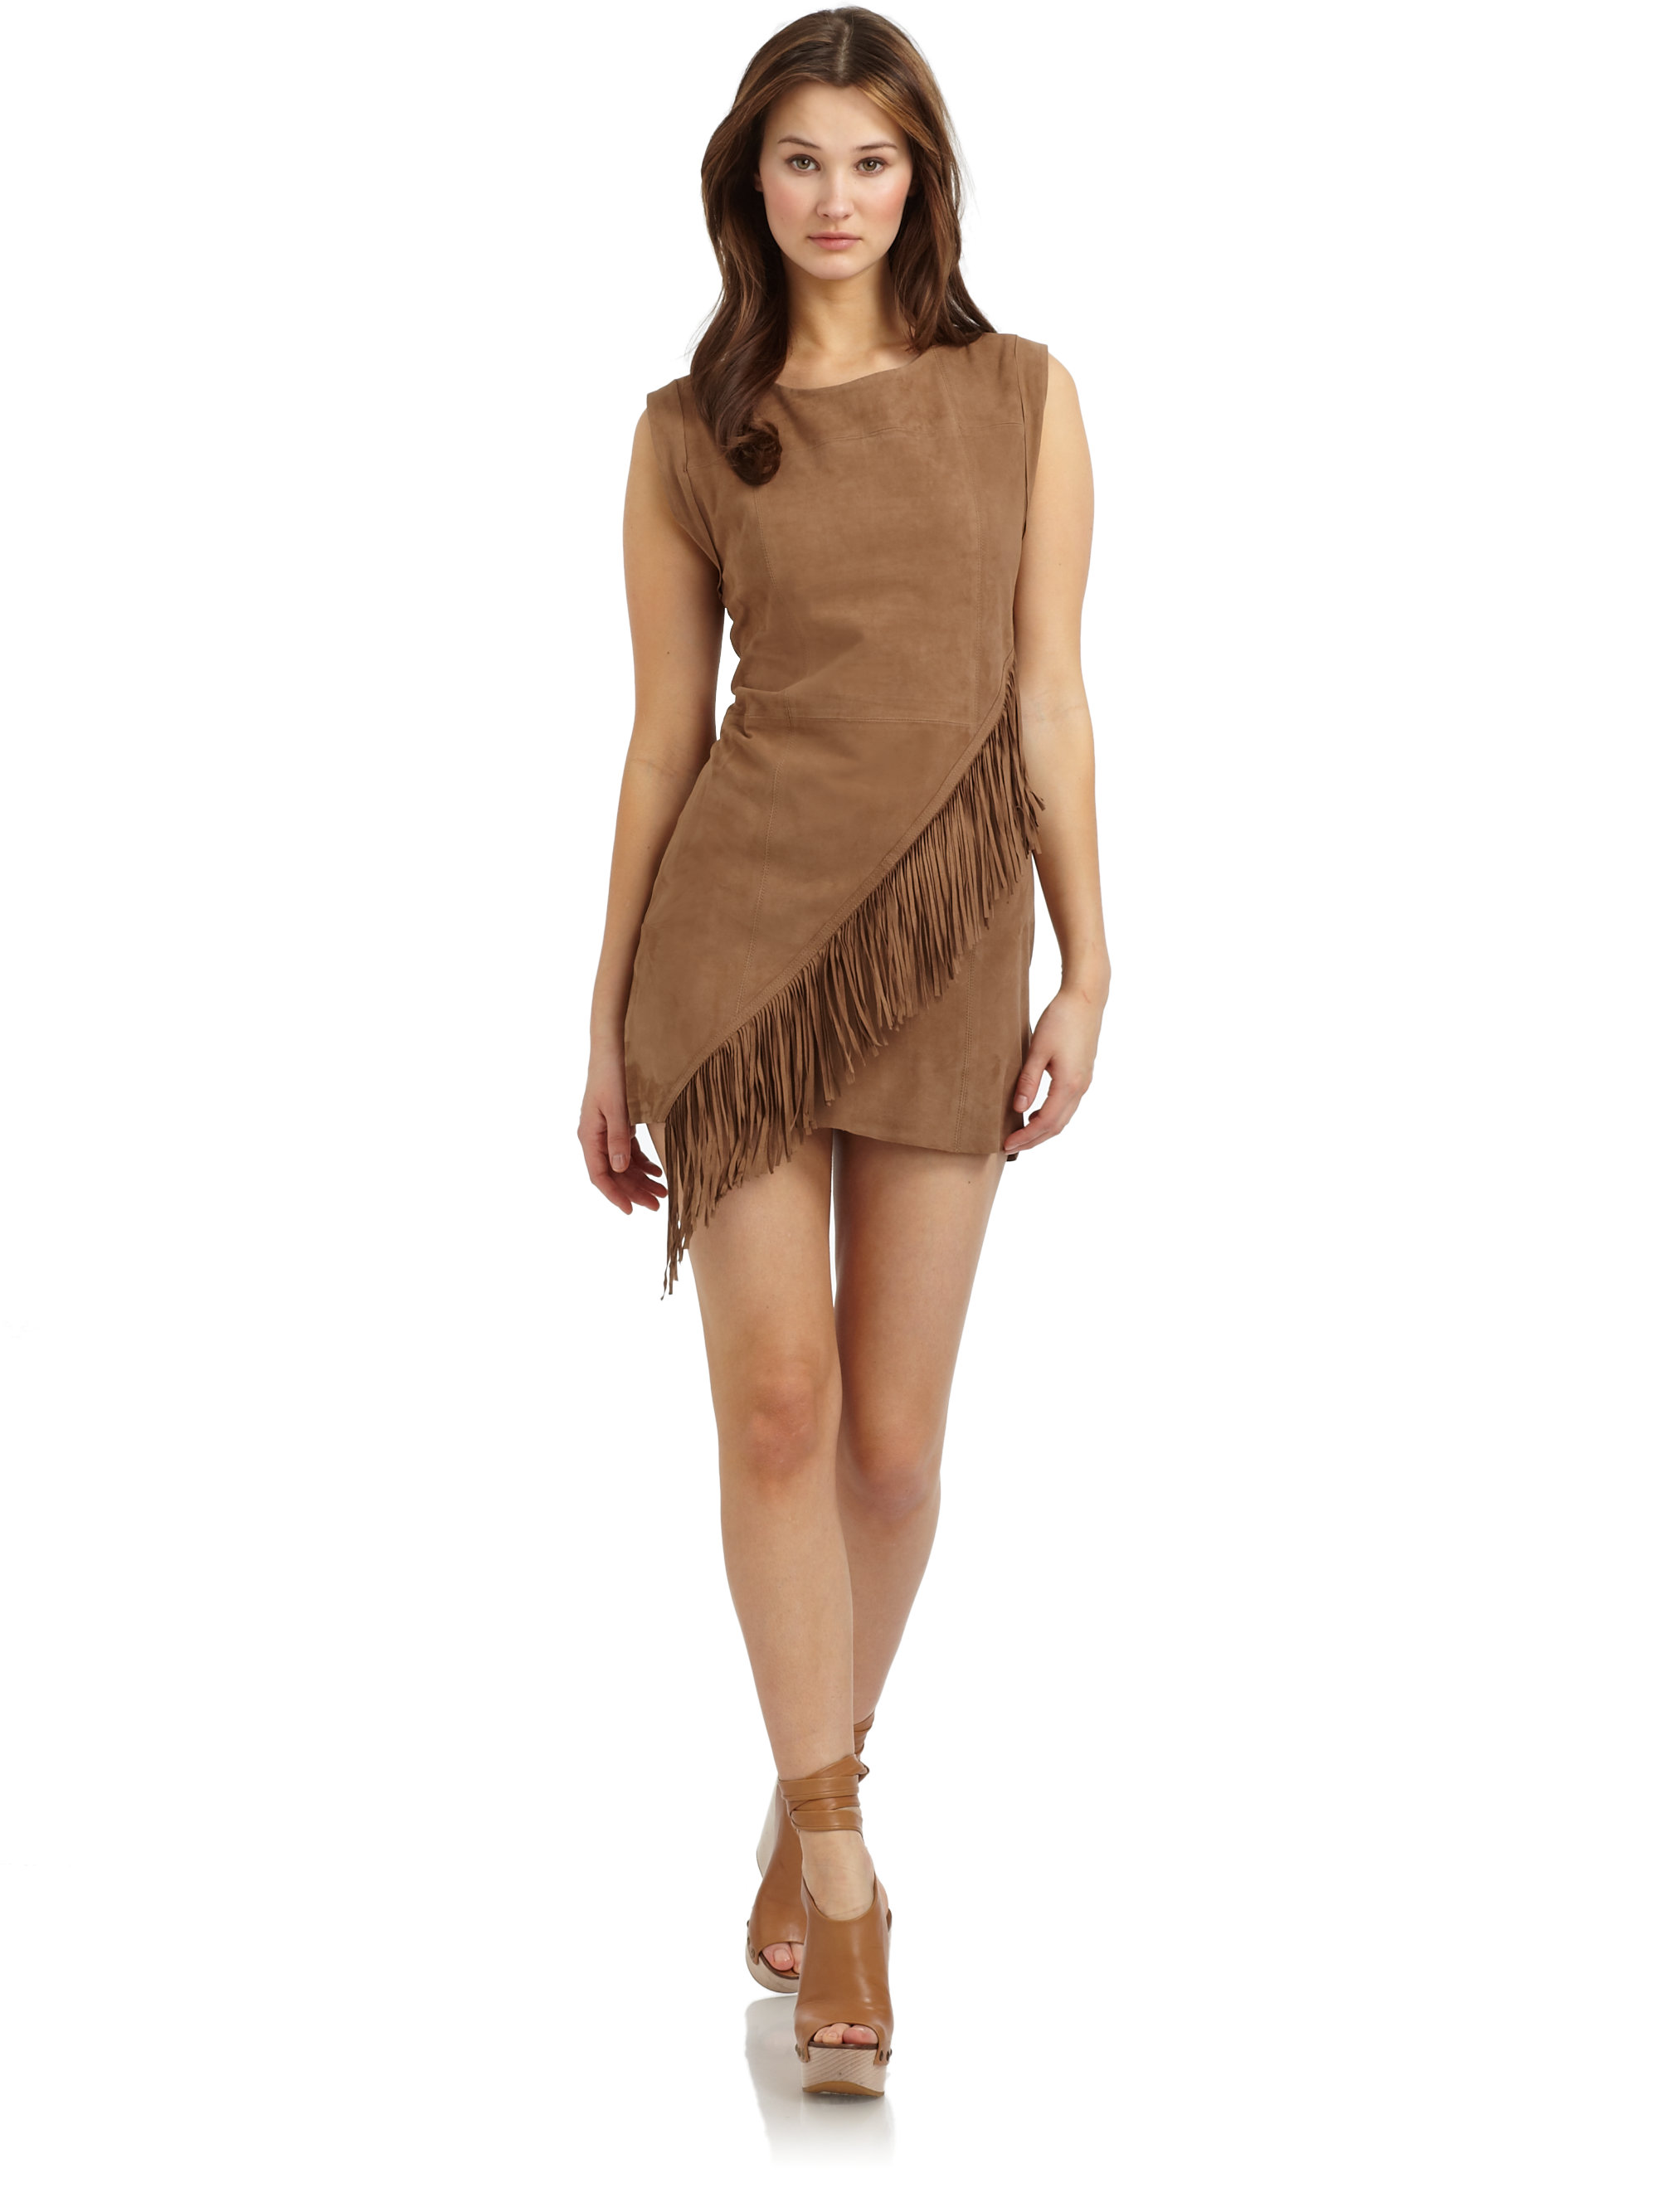 Find great deals on eBay for brown suede dress. Shop with confidence.